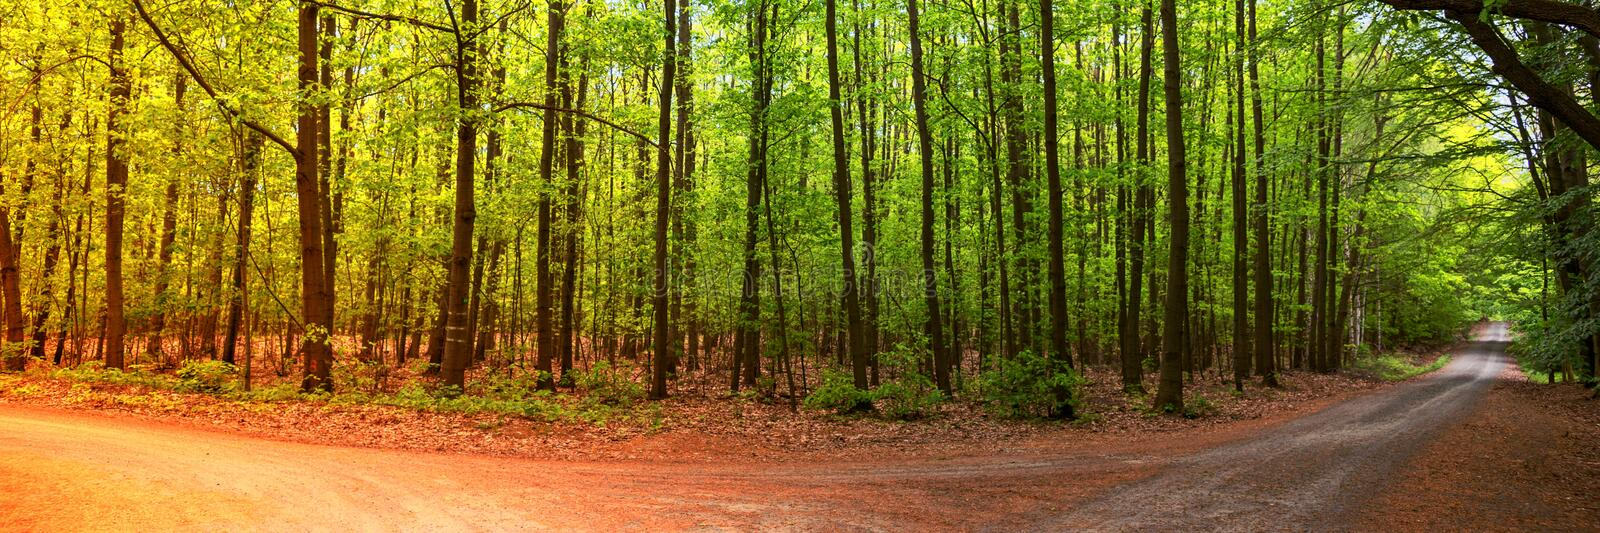 Two seasons in the forest, summer and autumn. Panoramic landscape shot stock photography